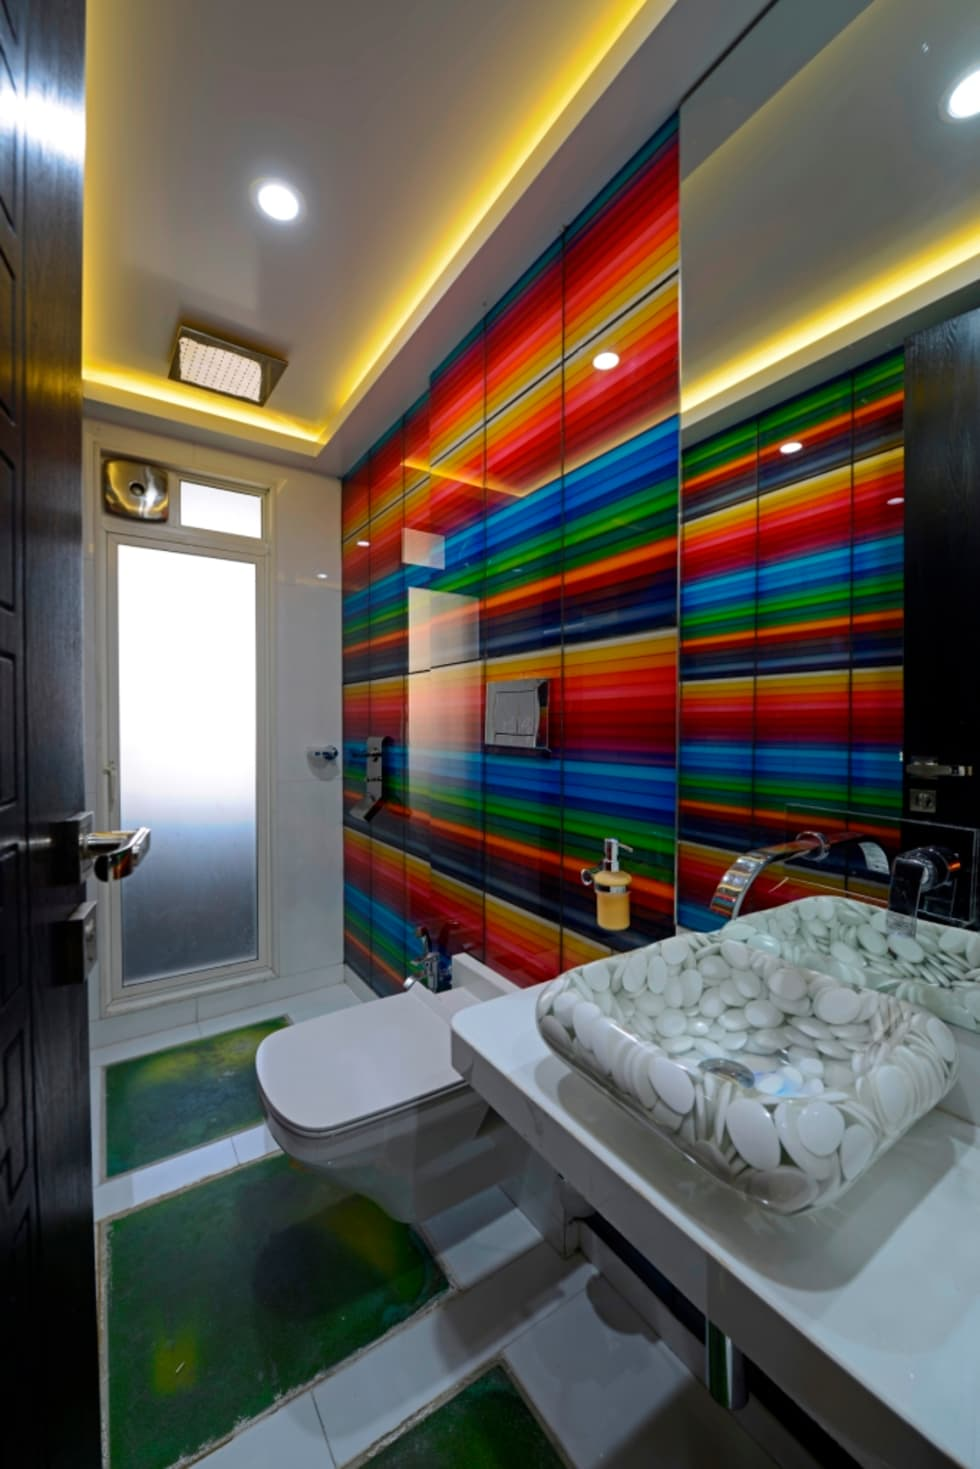 Interior design ideas inspiration pictures homify Bathroom designs for small flats in india